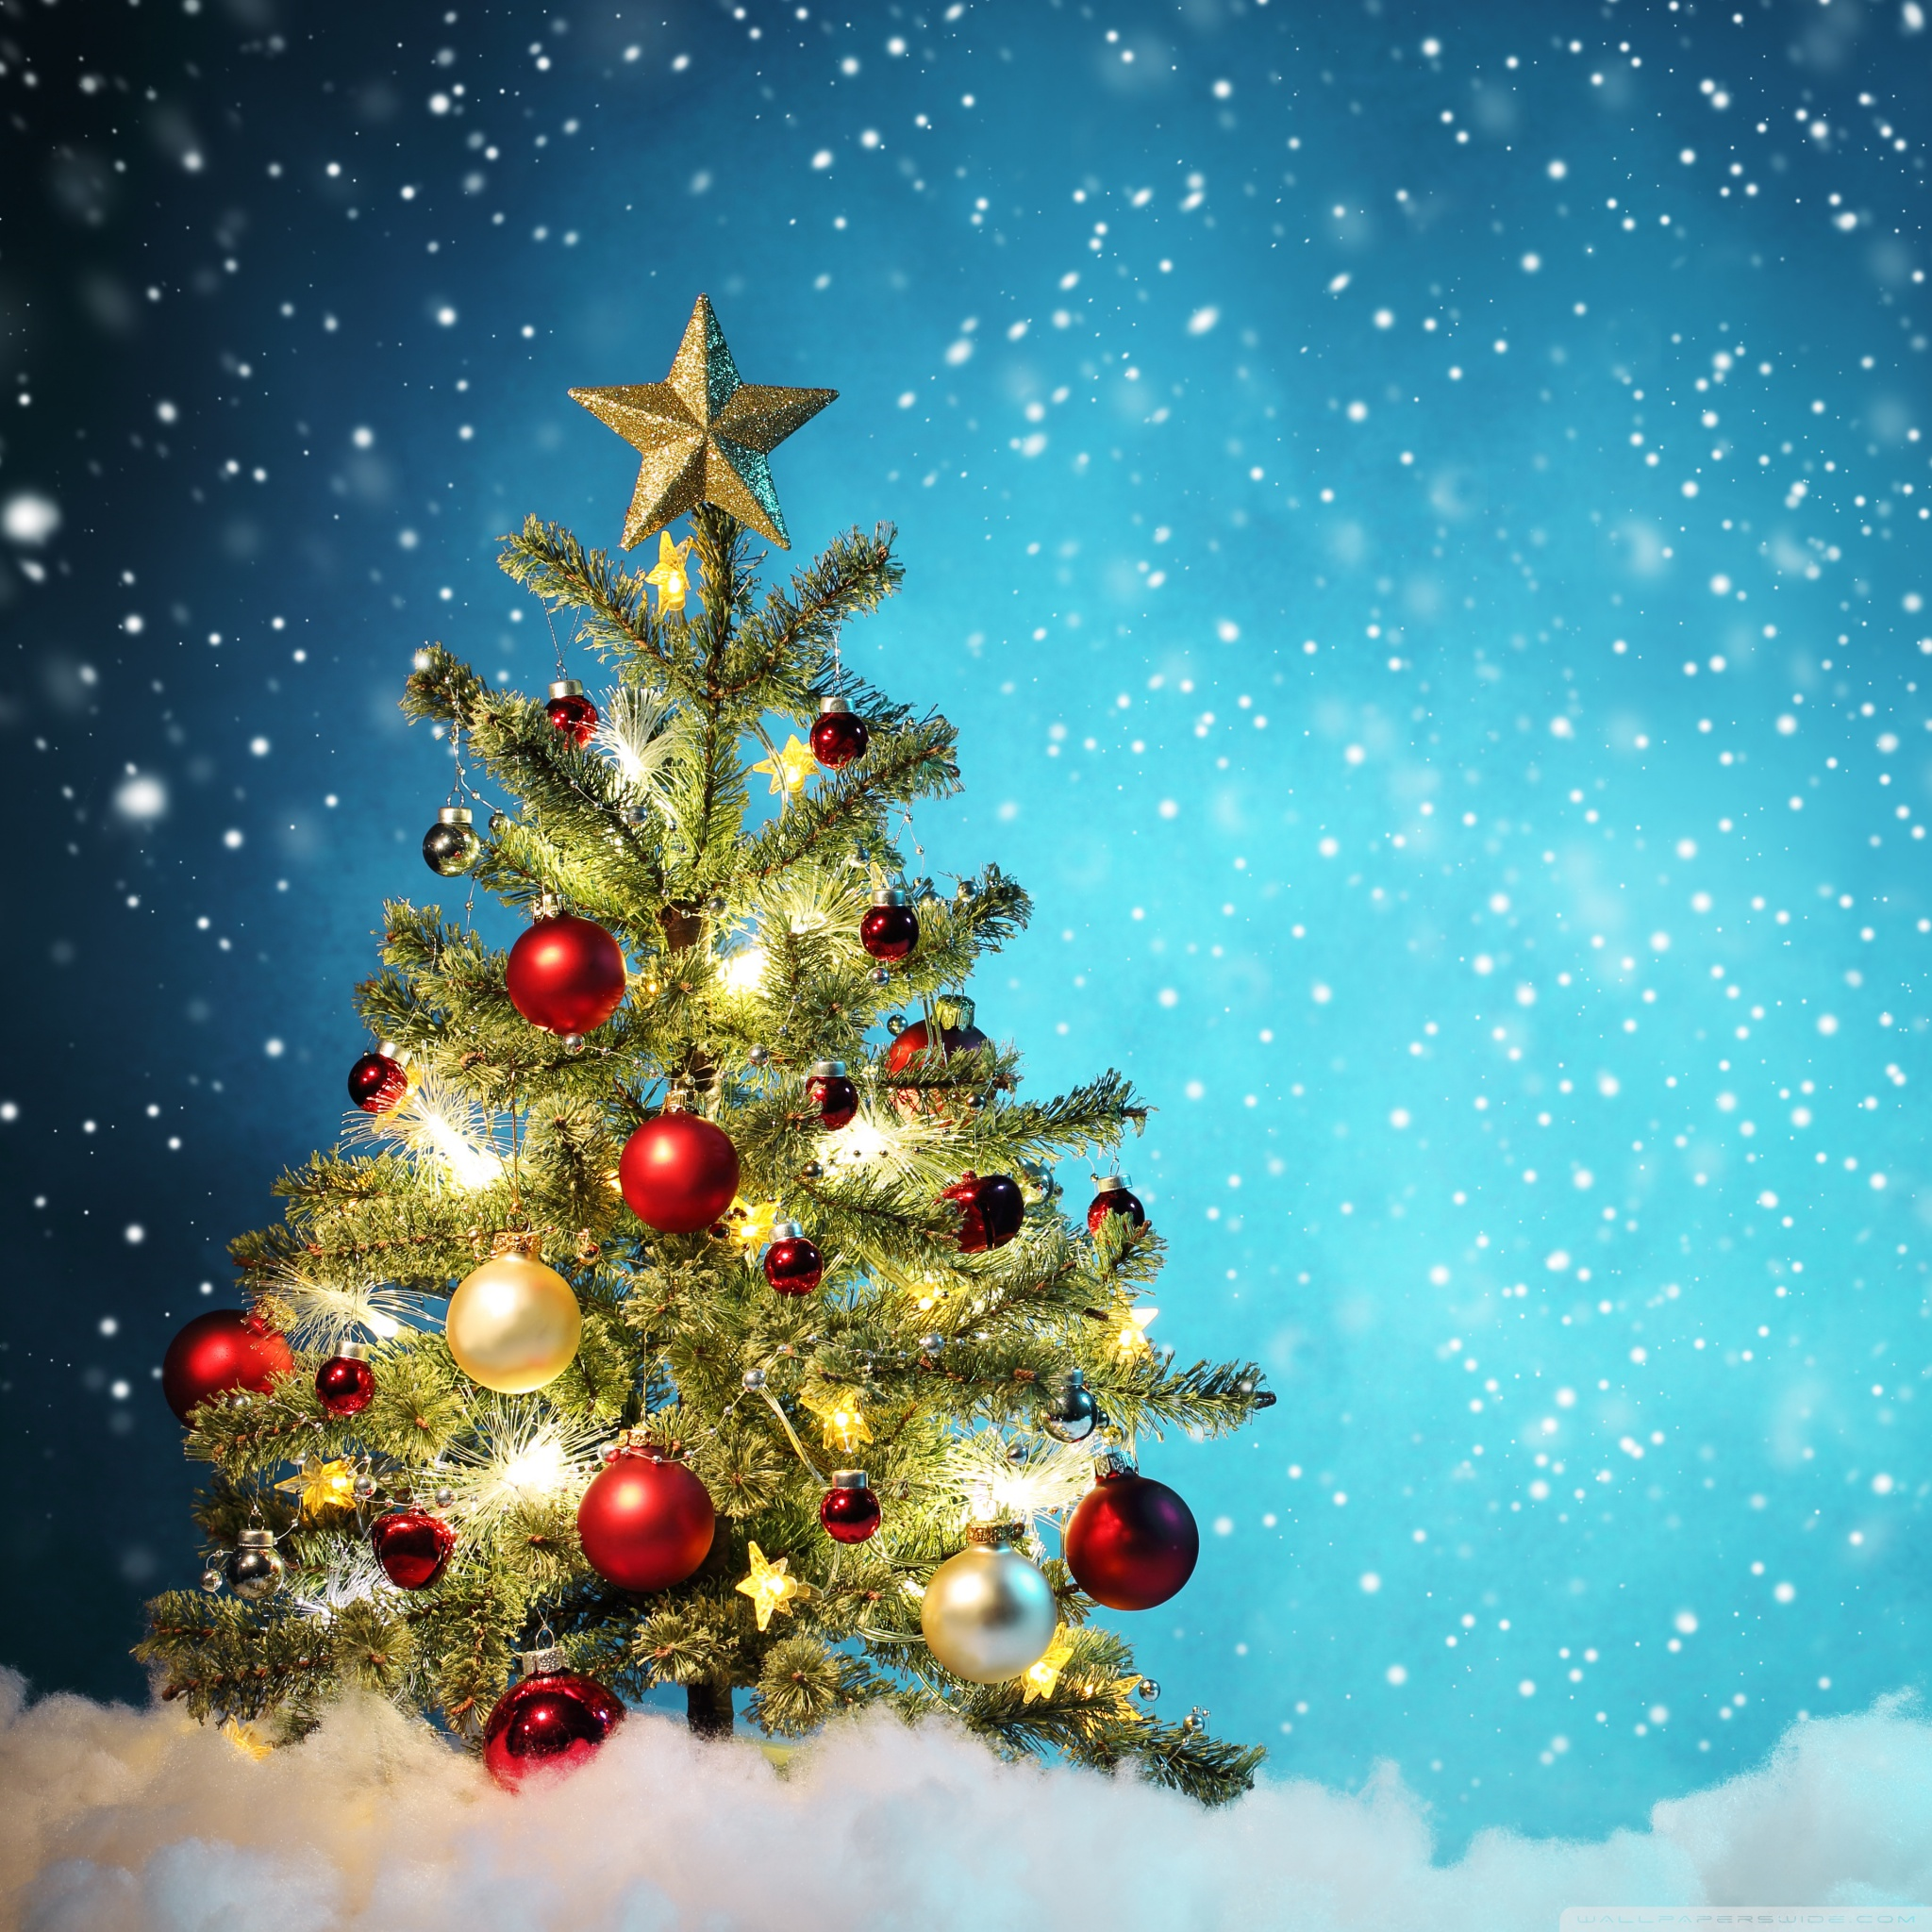 Hd Christmas Wallpaper For Ipad - Finest Wallpapers